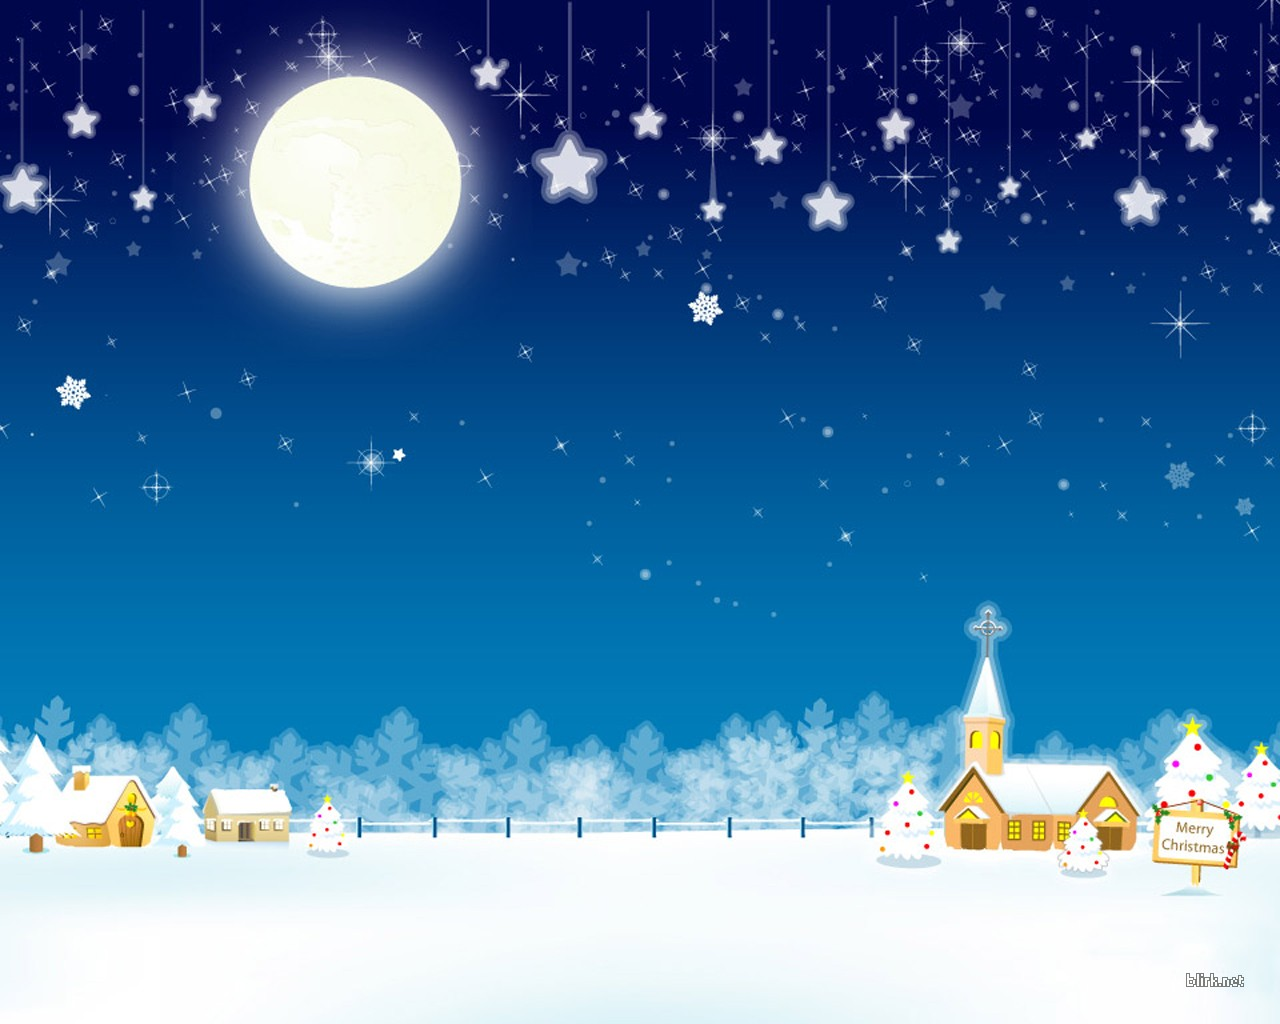 Christmas Backgrounds wallpaper christmas snow village wallpaper 1280x1024